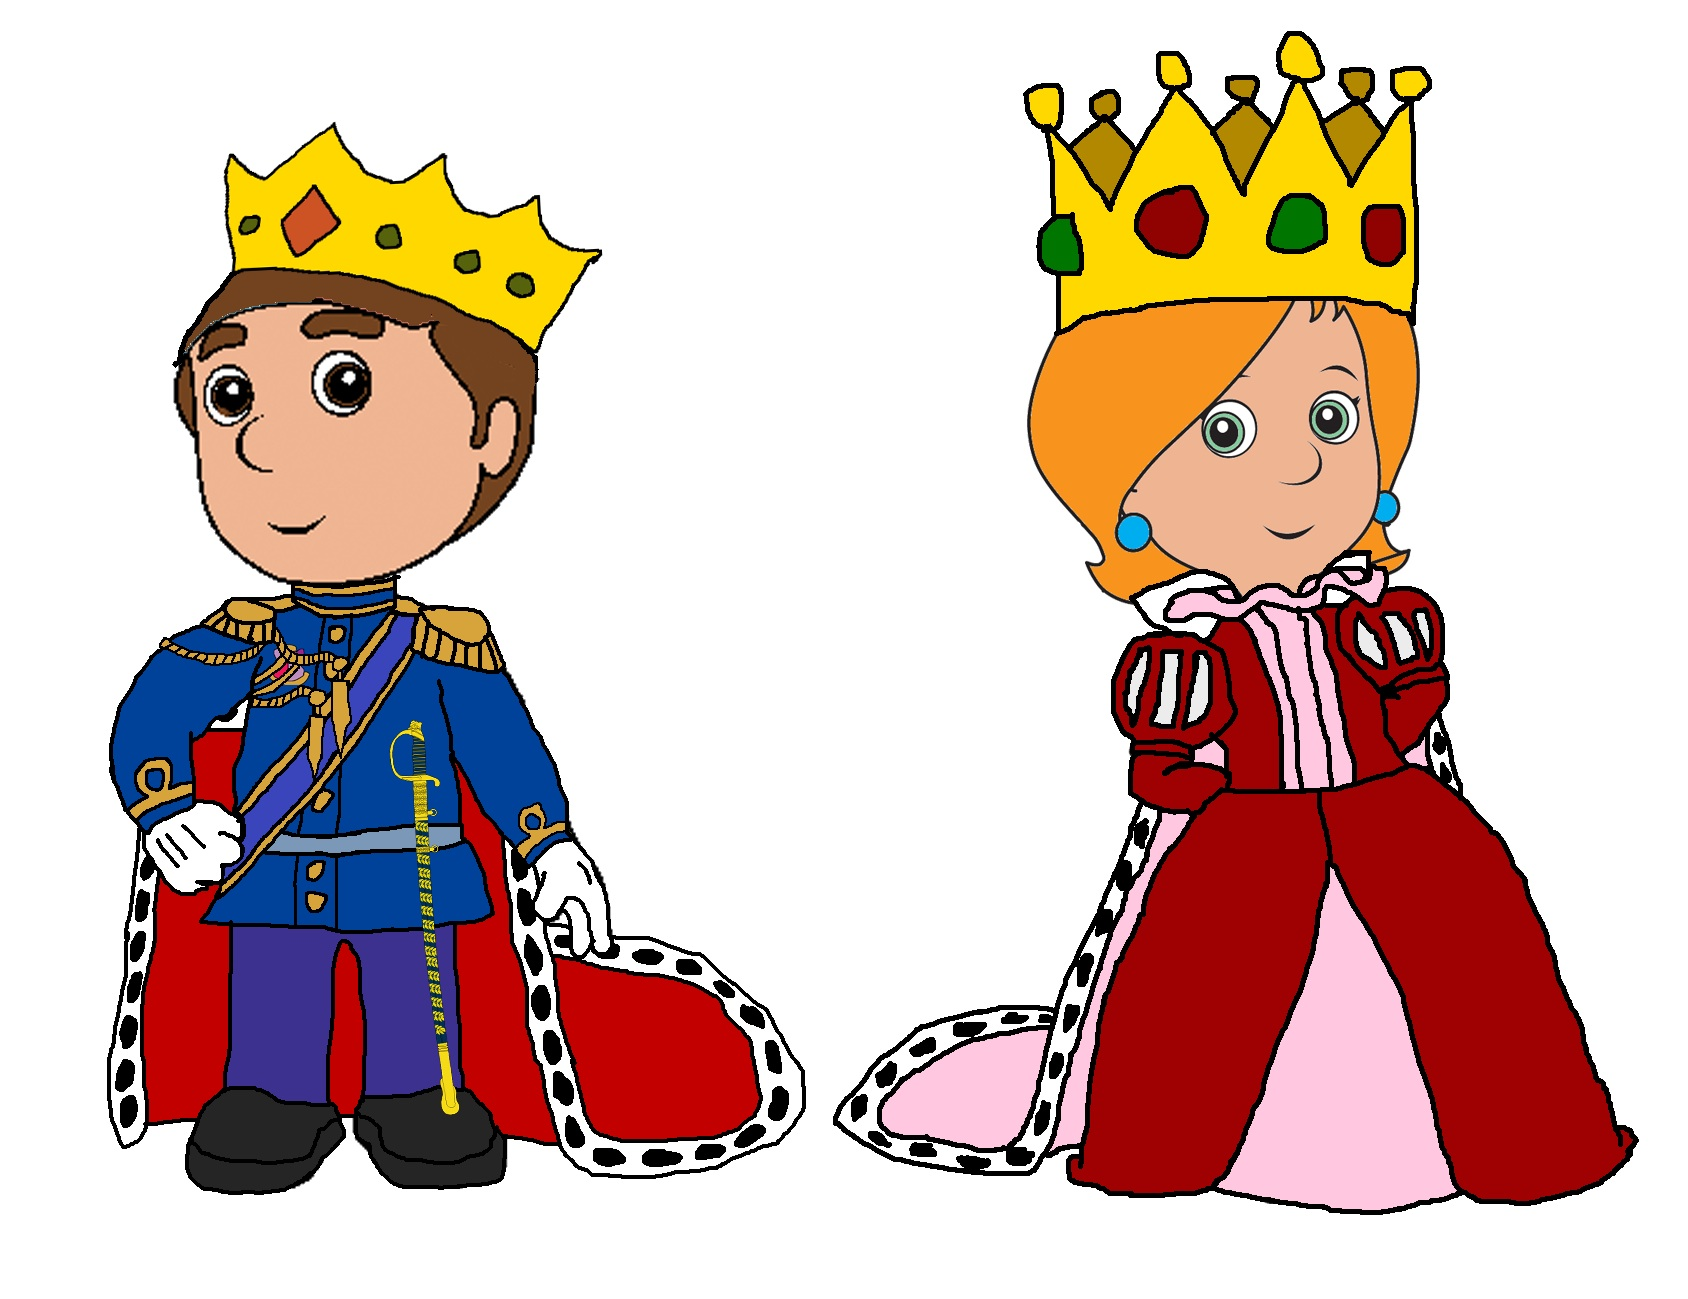 King pictures clipart transparent download Free Kings Cliparts, Download Free Clip Art, Free Clip Art on ... transparent download